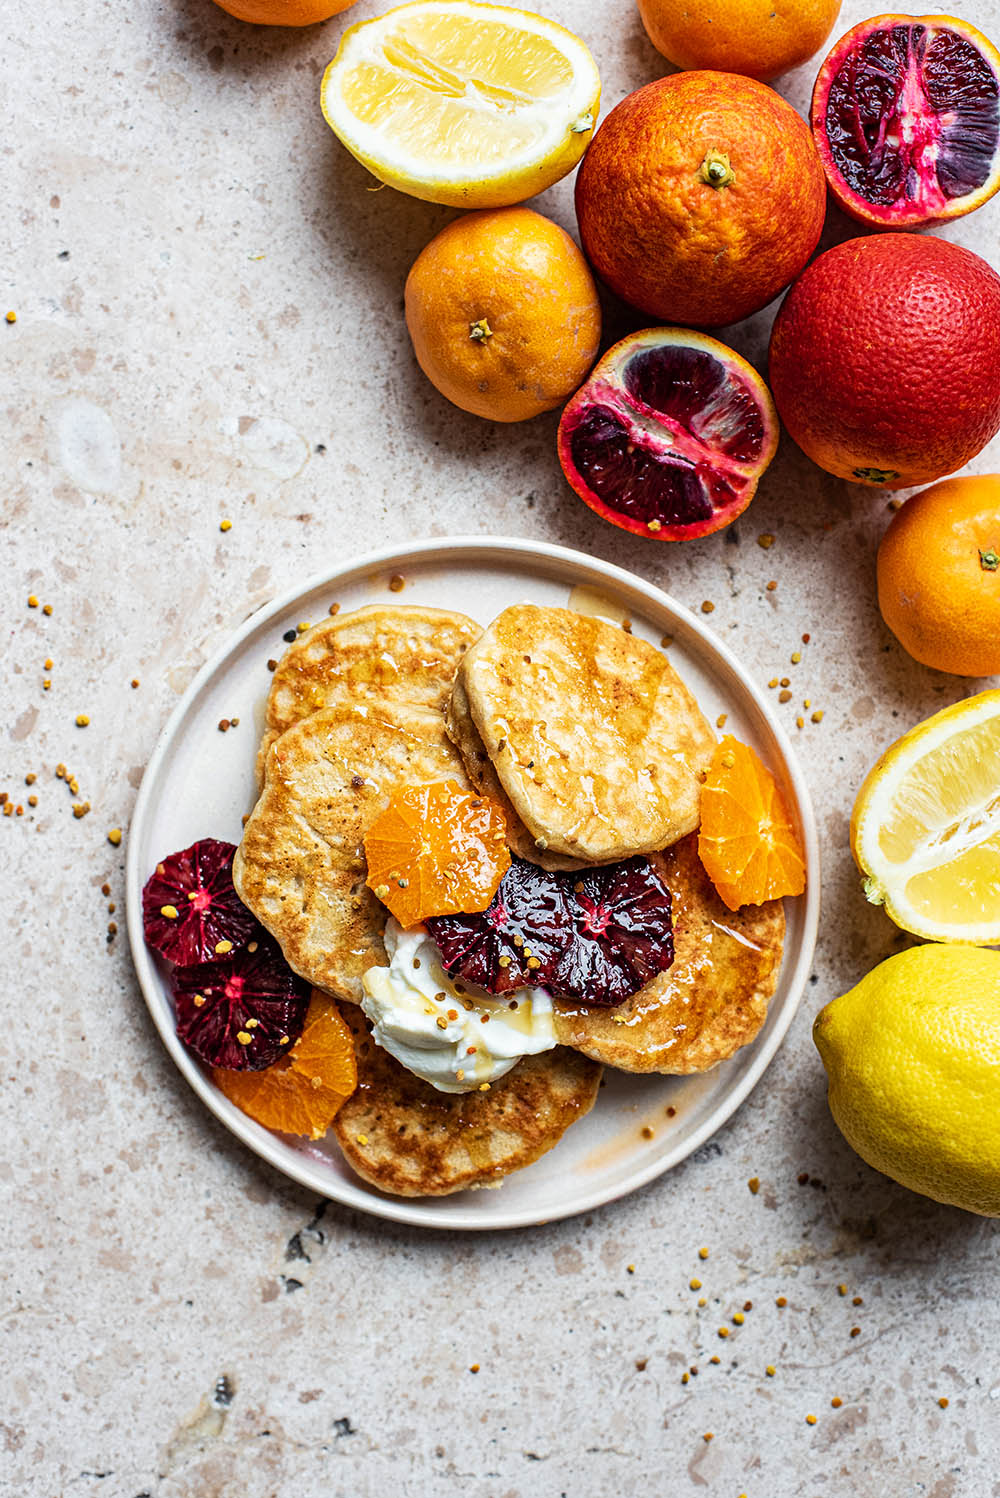 Several pancakes on a plate with citrus fruits around.